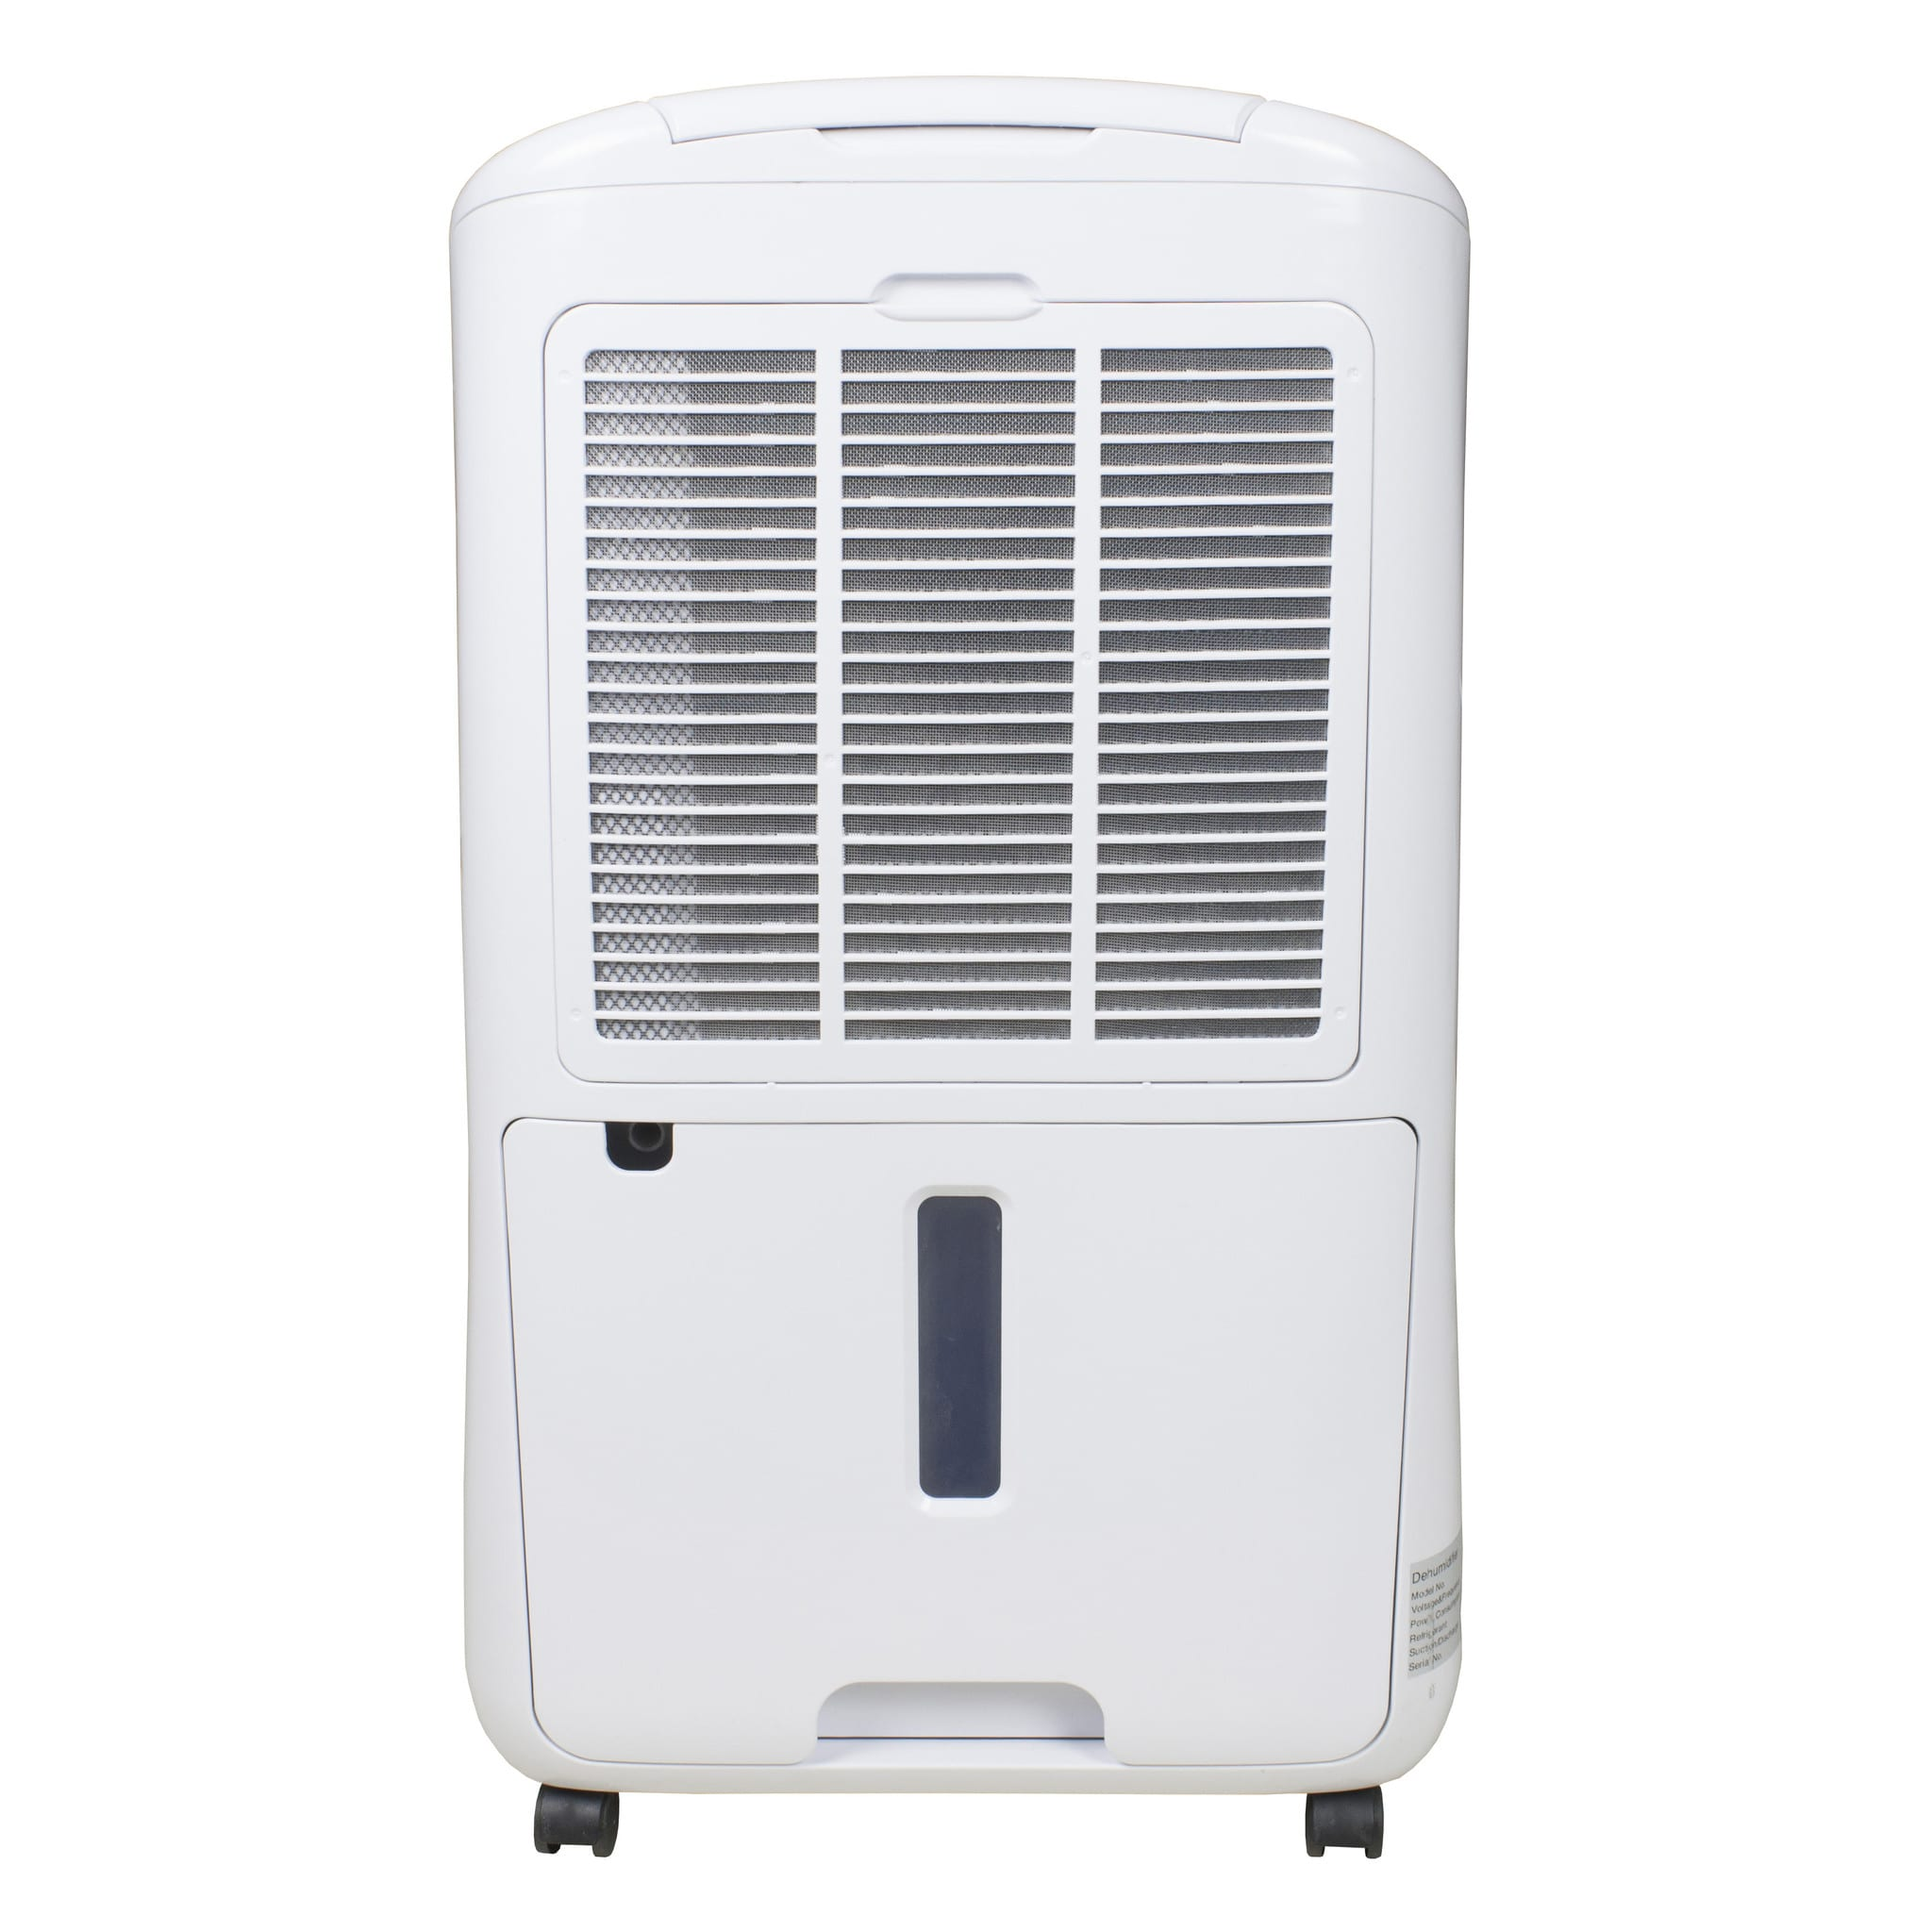 gddek16 $ 389 99 add to basket category dehumidifiers tag dimplex #494C59